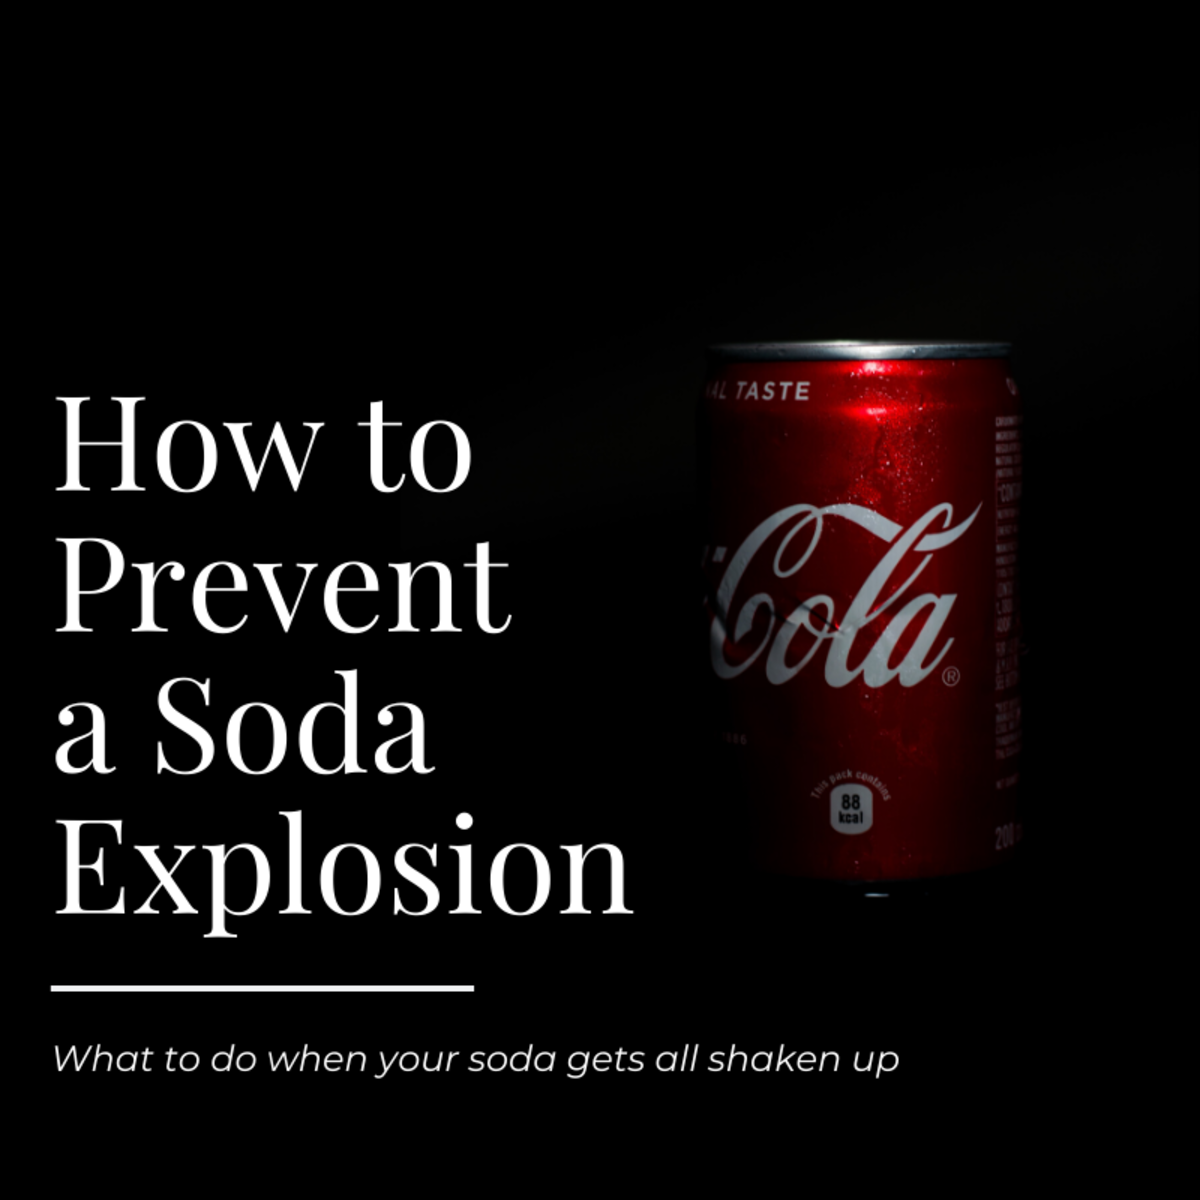 Help! My Bottle of Soda's All Shaken Up: Preventing Coke Explosions